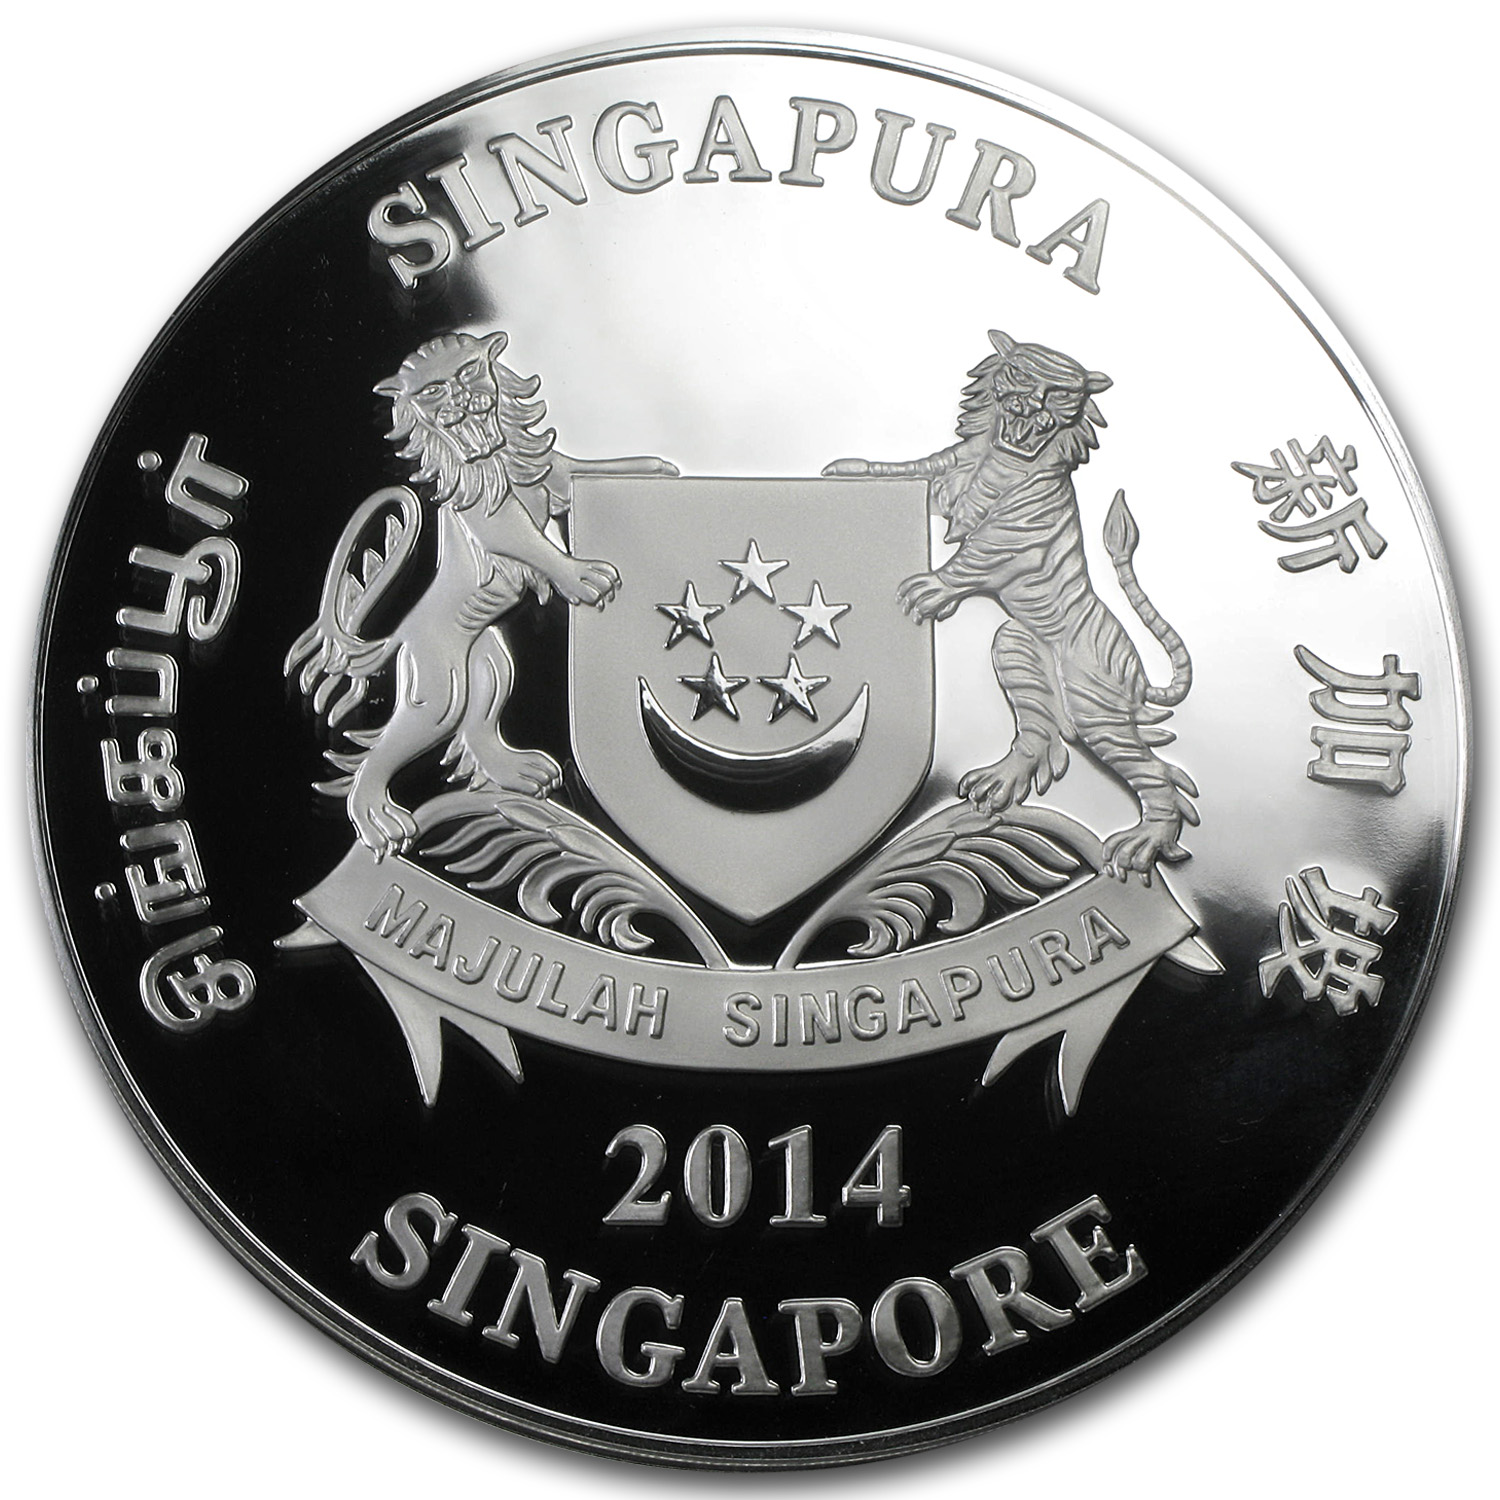 2014 Singapore Year of the Horse 1 Kilo Silver Proof-Like Coin